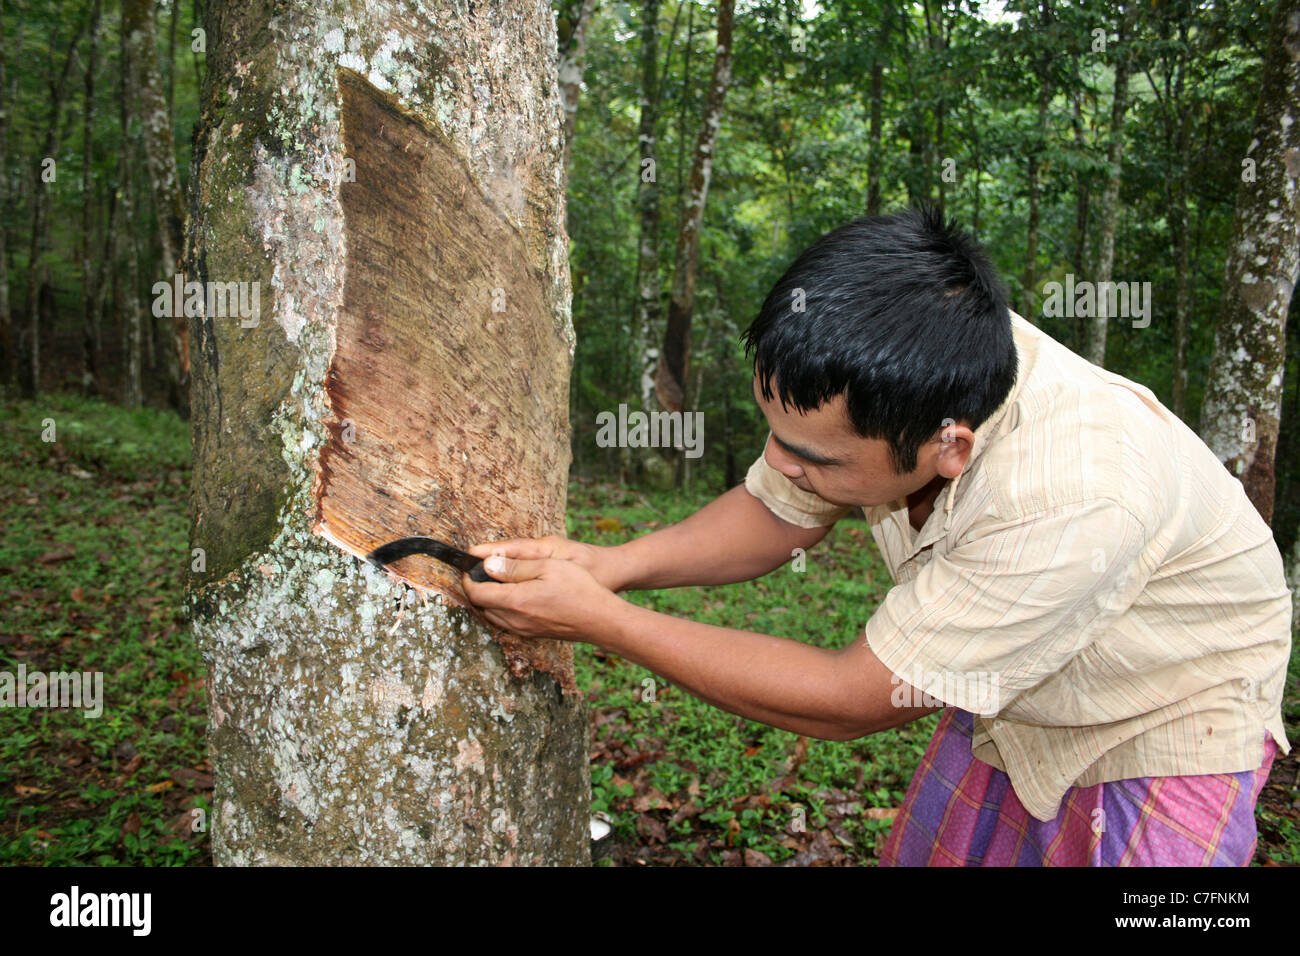 Indonesian Man Making Incision On A Rubber Tree Causing The Latex Sap To Flow: A Process Known As Rubber Tapping - Stock Image